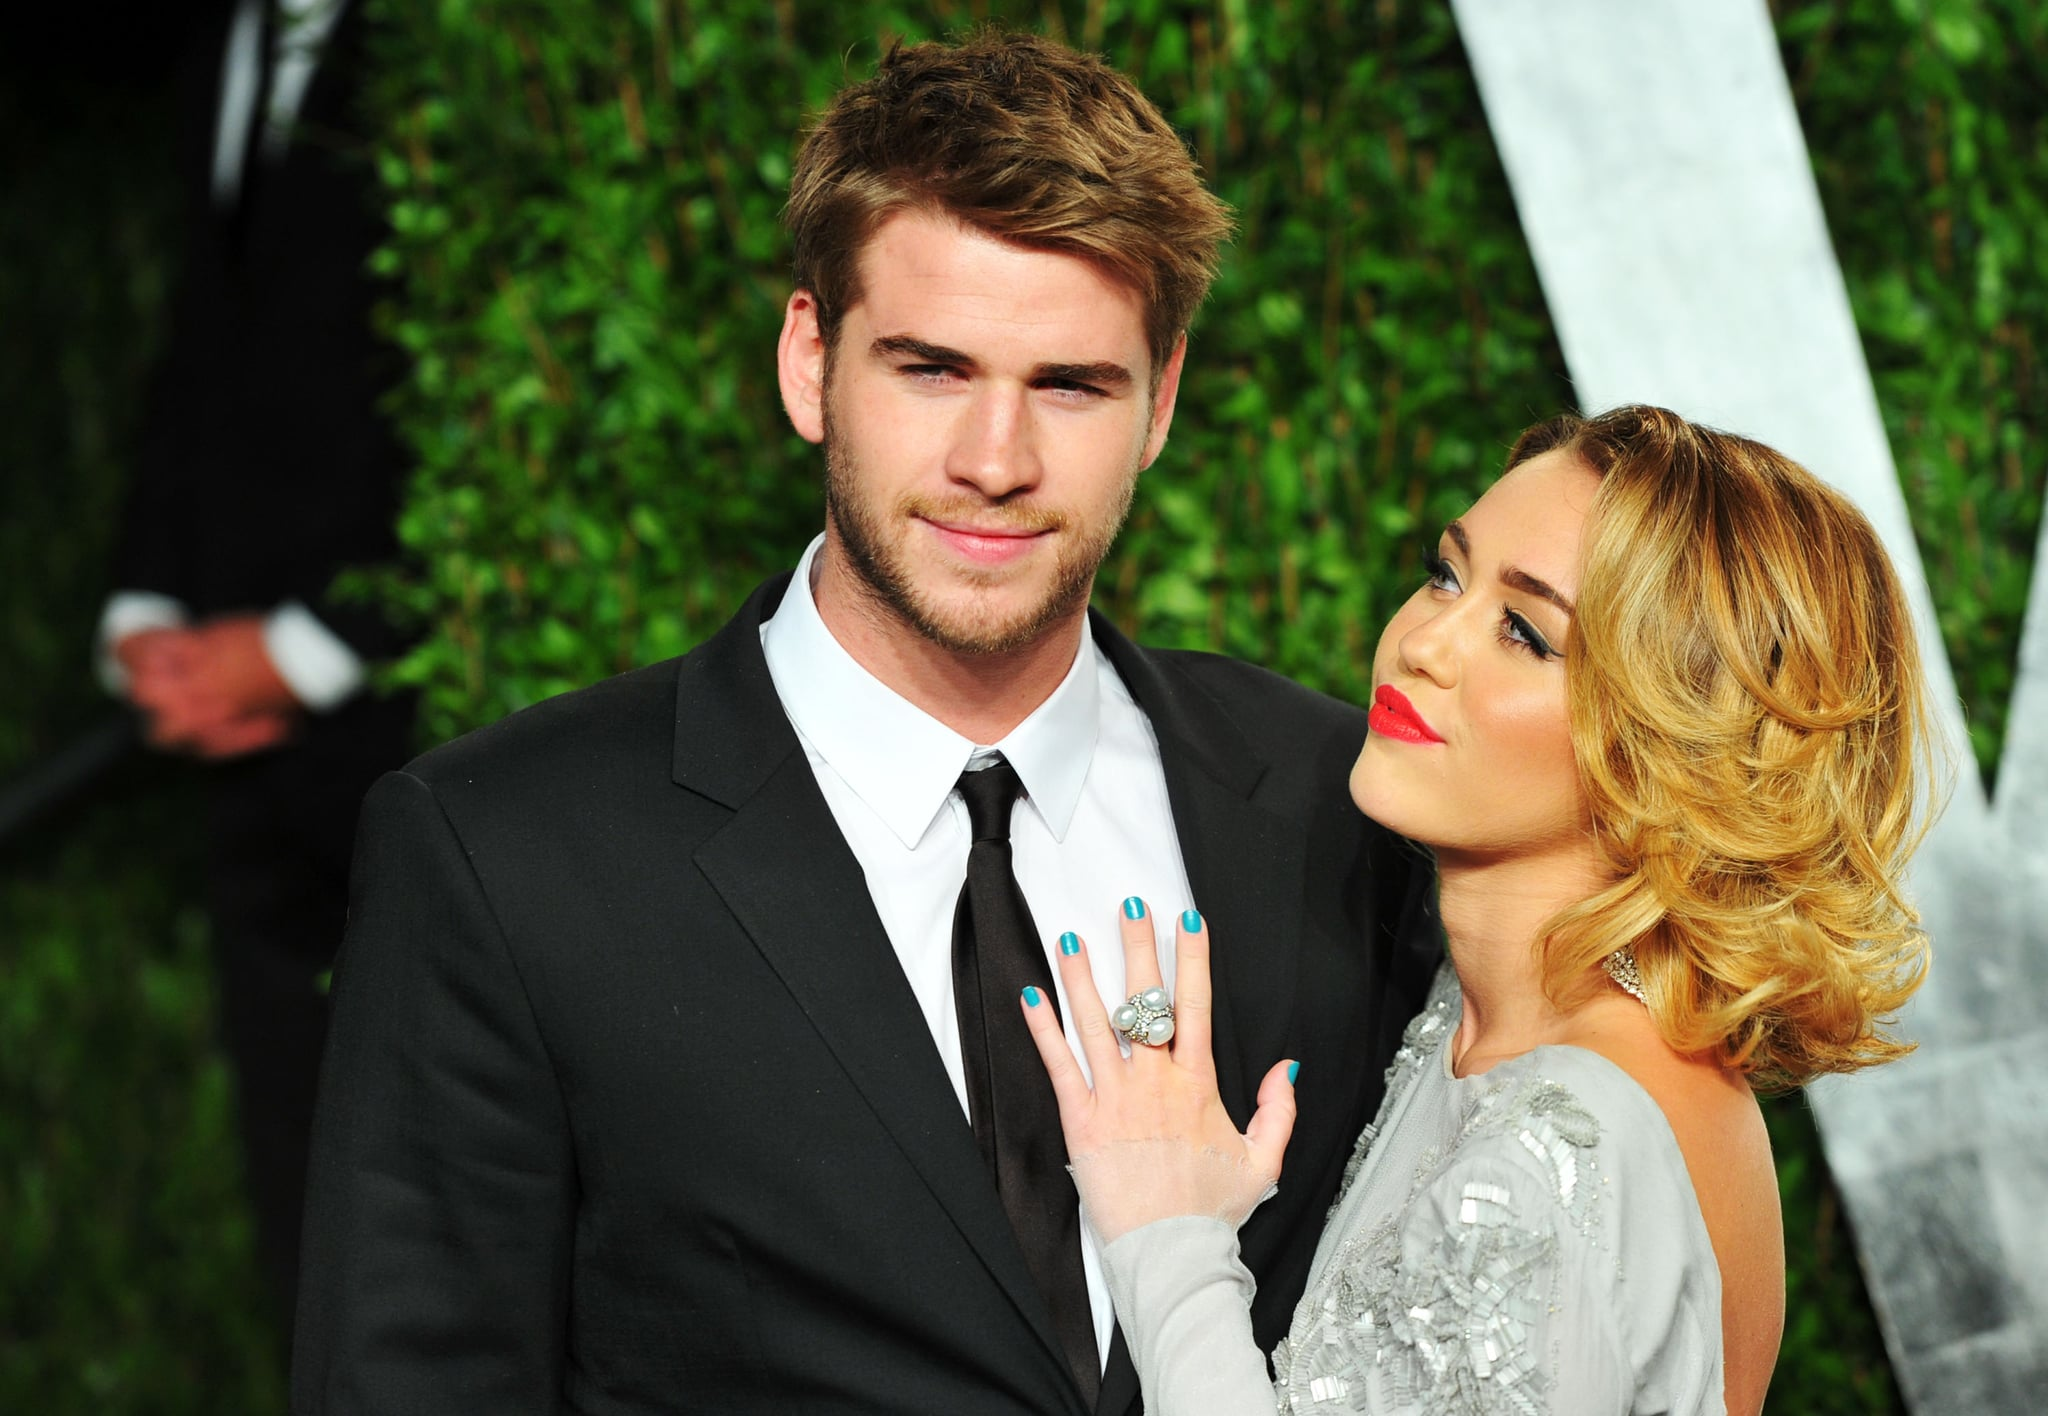 Miley Cyrus Talks About Liam Hemsworth May 2017 | POPSUGAR ...